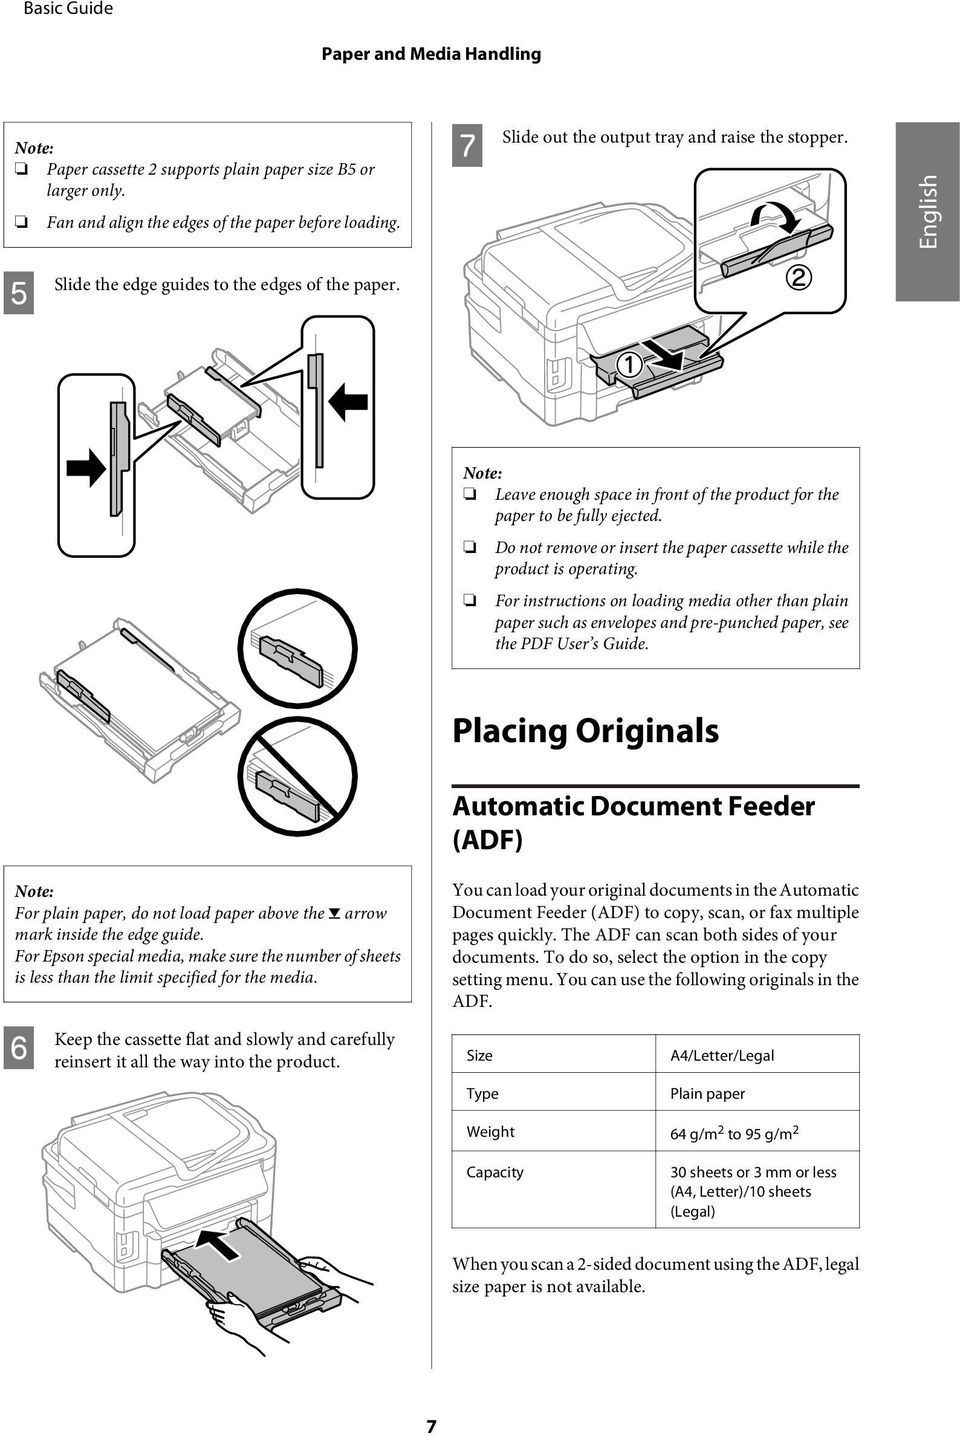 o not remove or insert the paper cassette while the product is operating. For instructions on loading media other than plain paper such as envelopes and pre-punched paper, see the PF User s Guide.